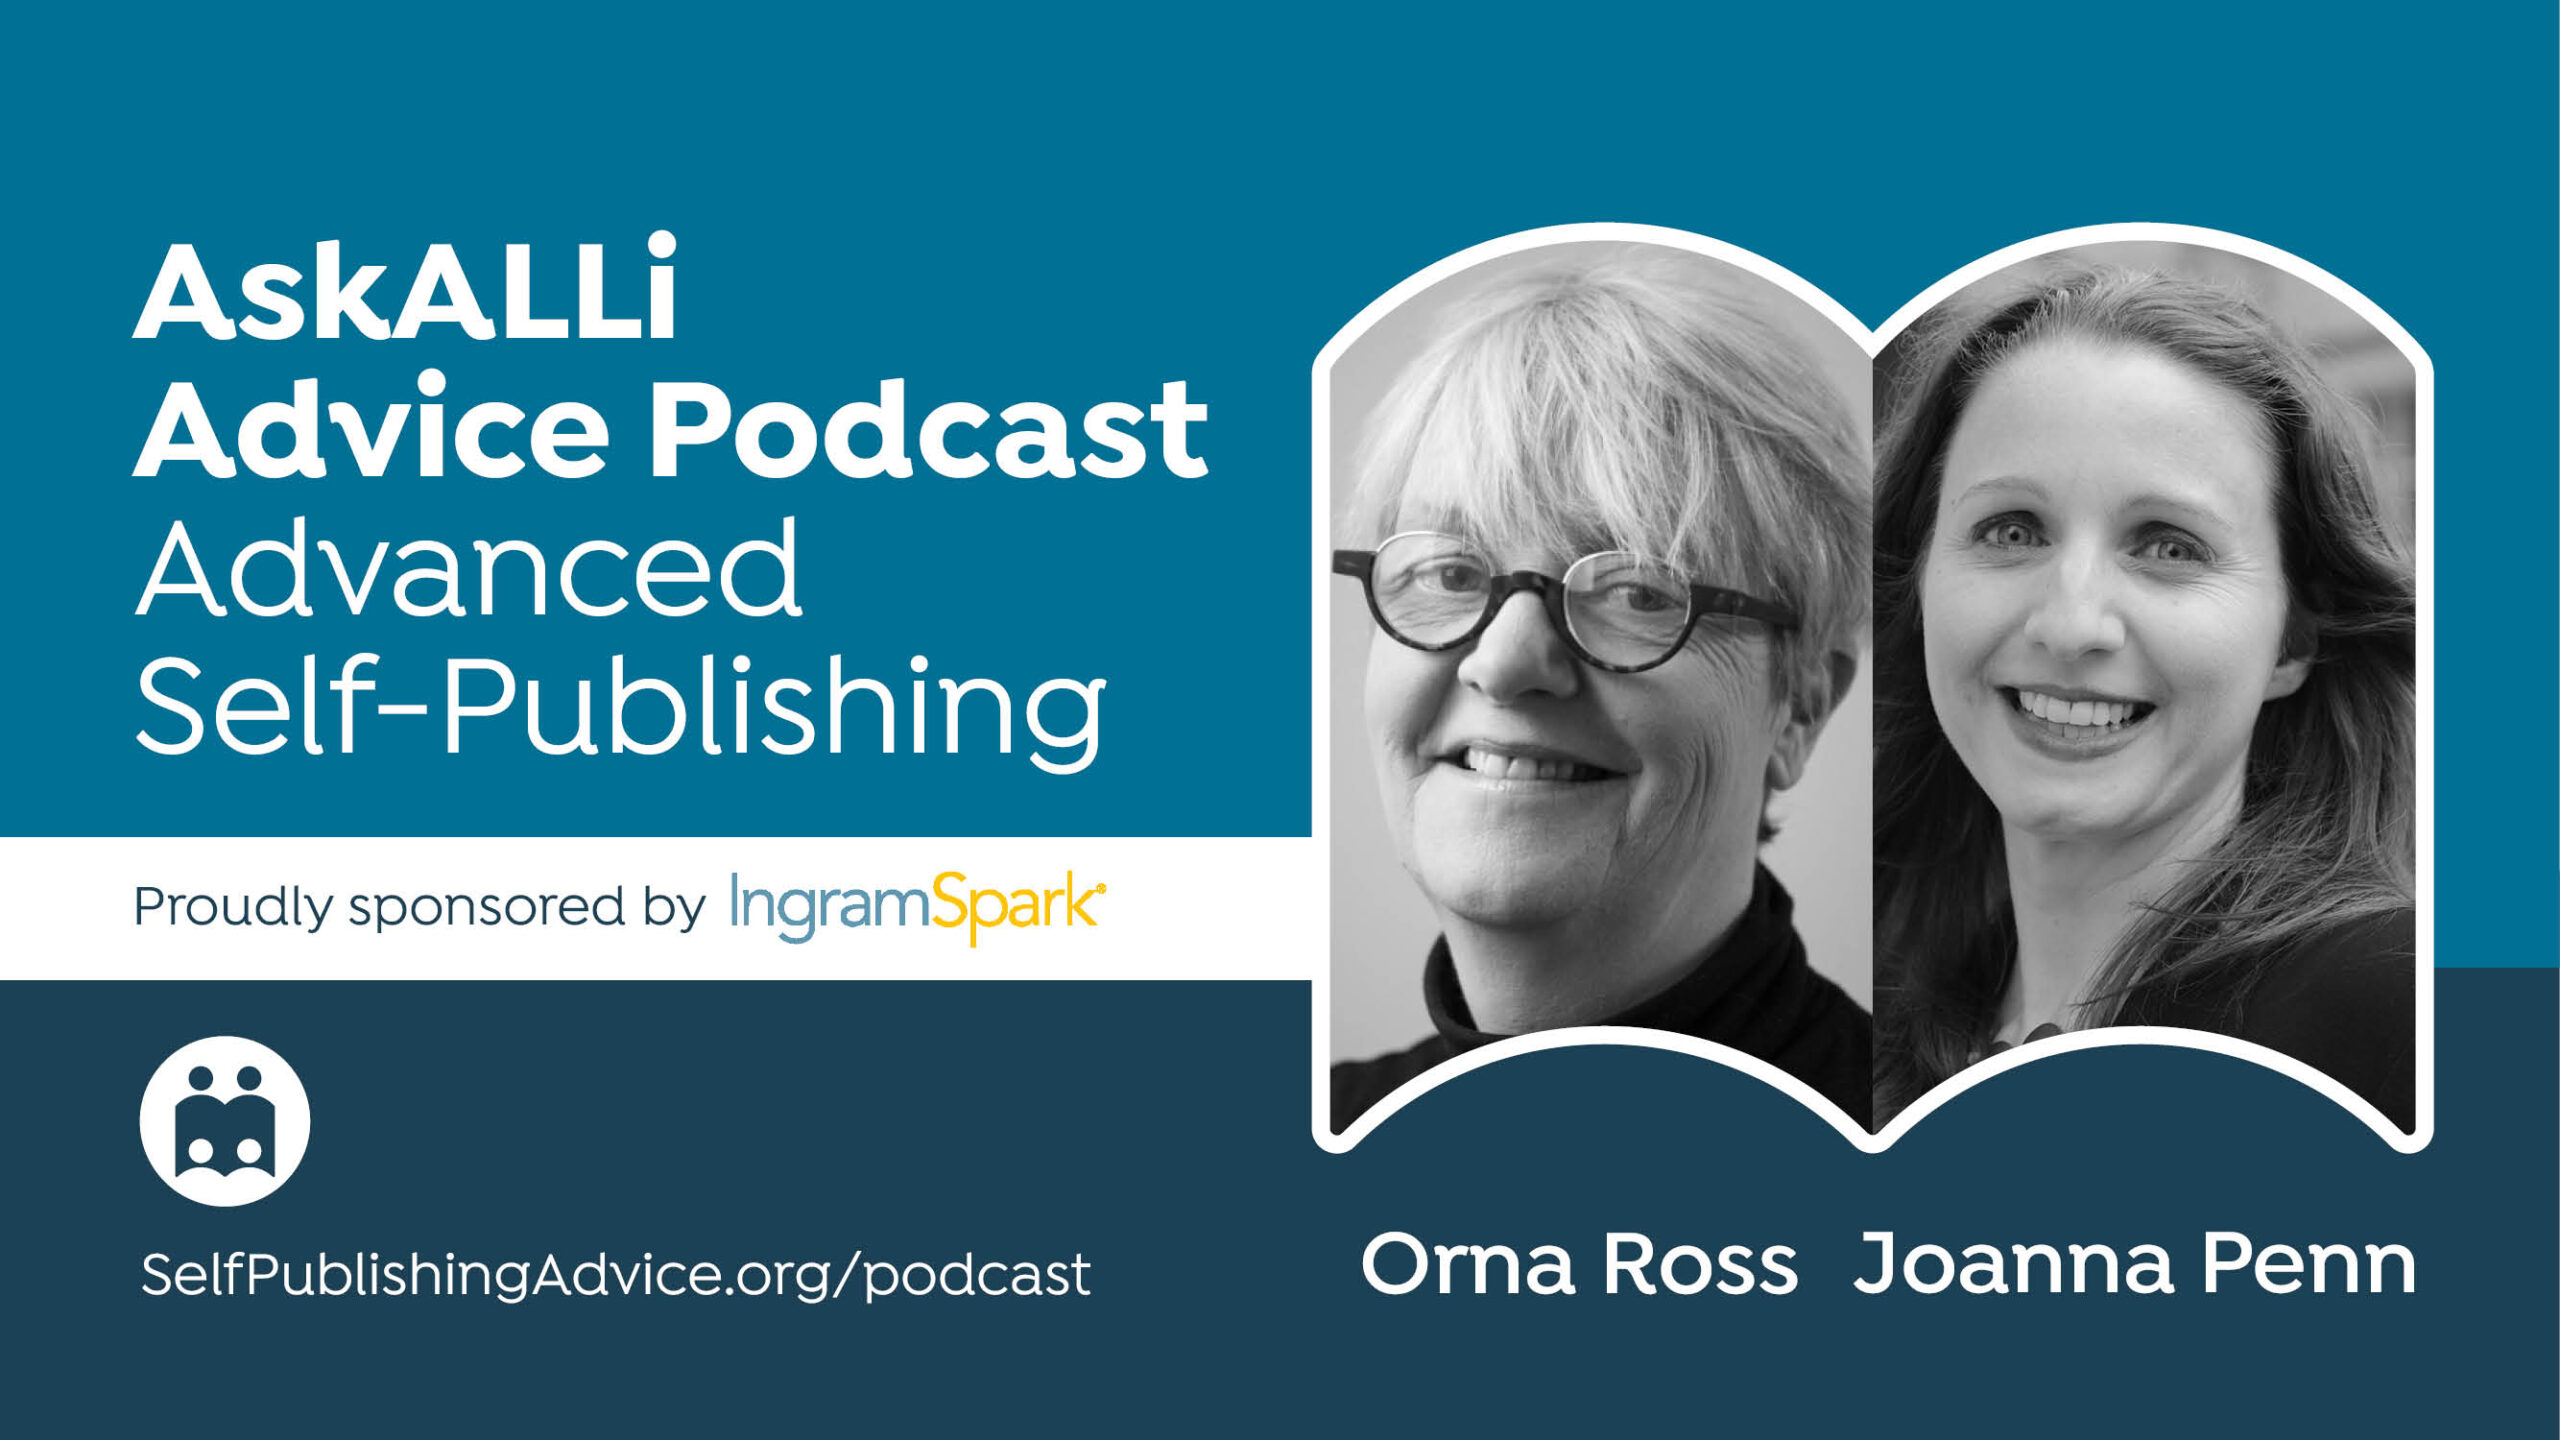 PODCAST: The Indie Author Business Cycle: From Start-Up To Mature Business